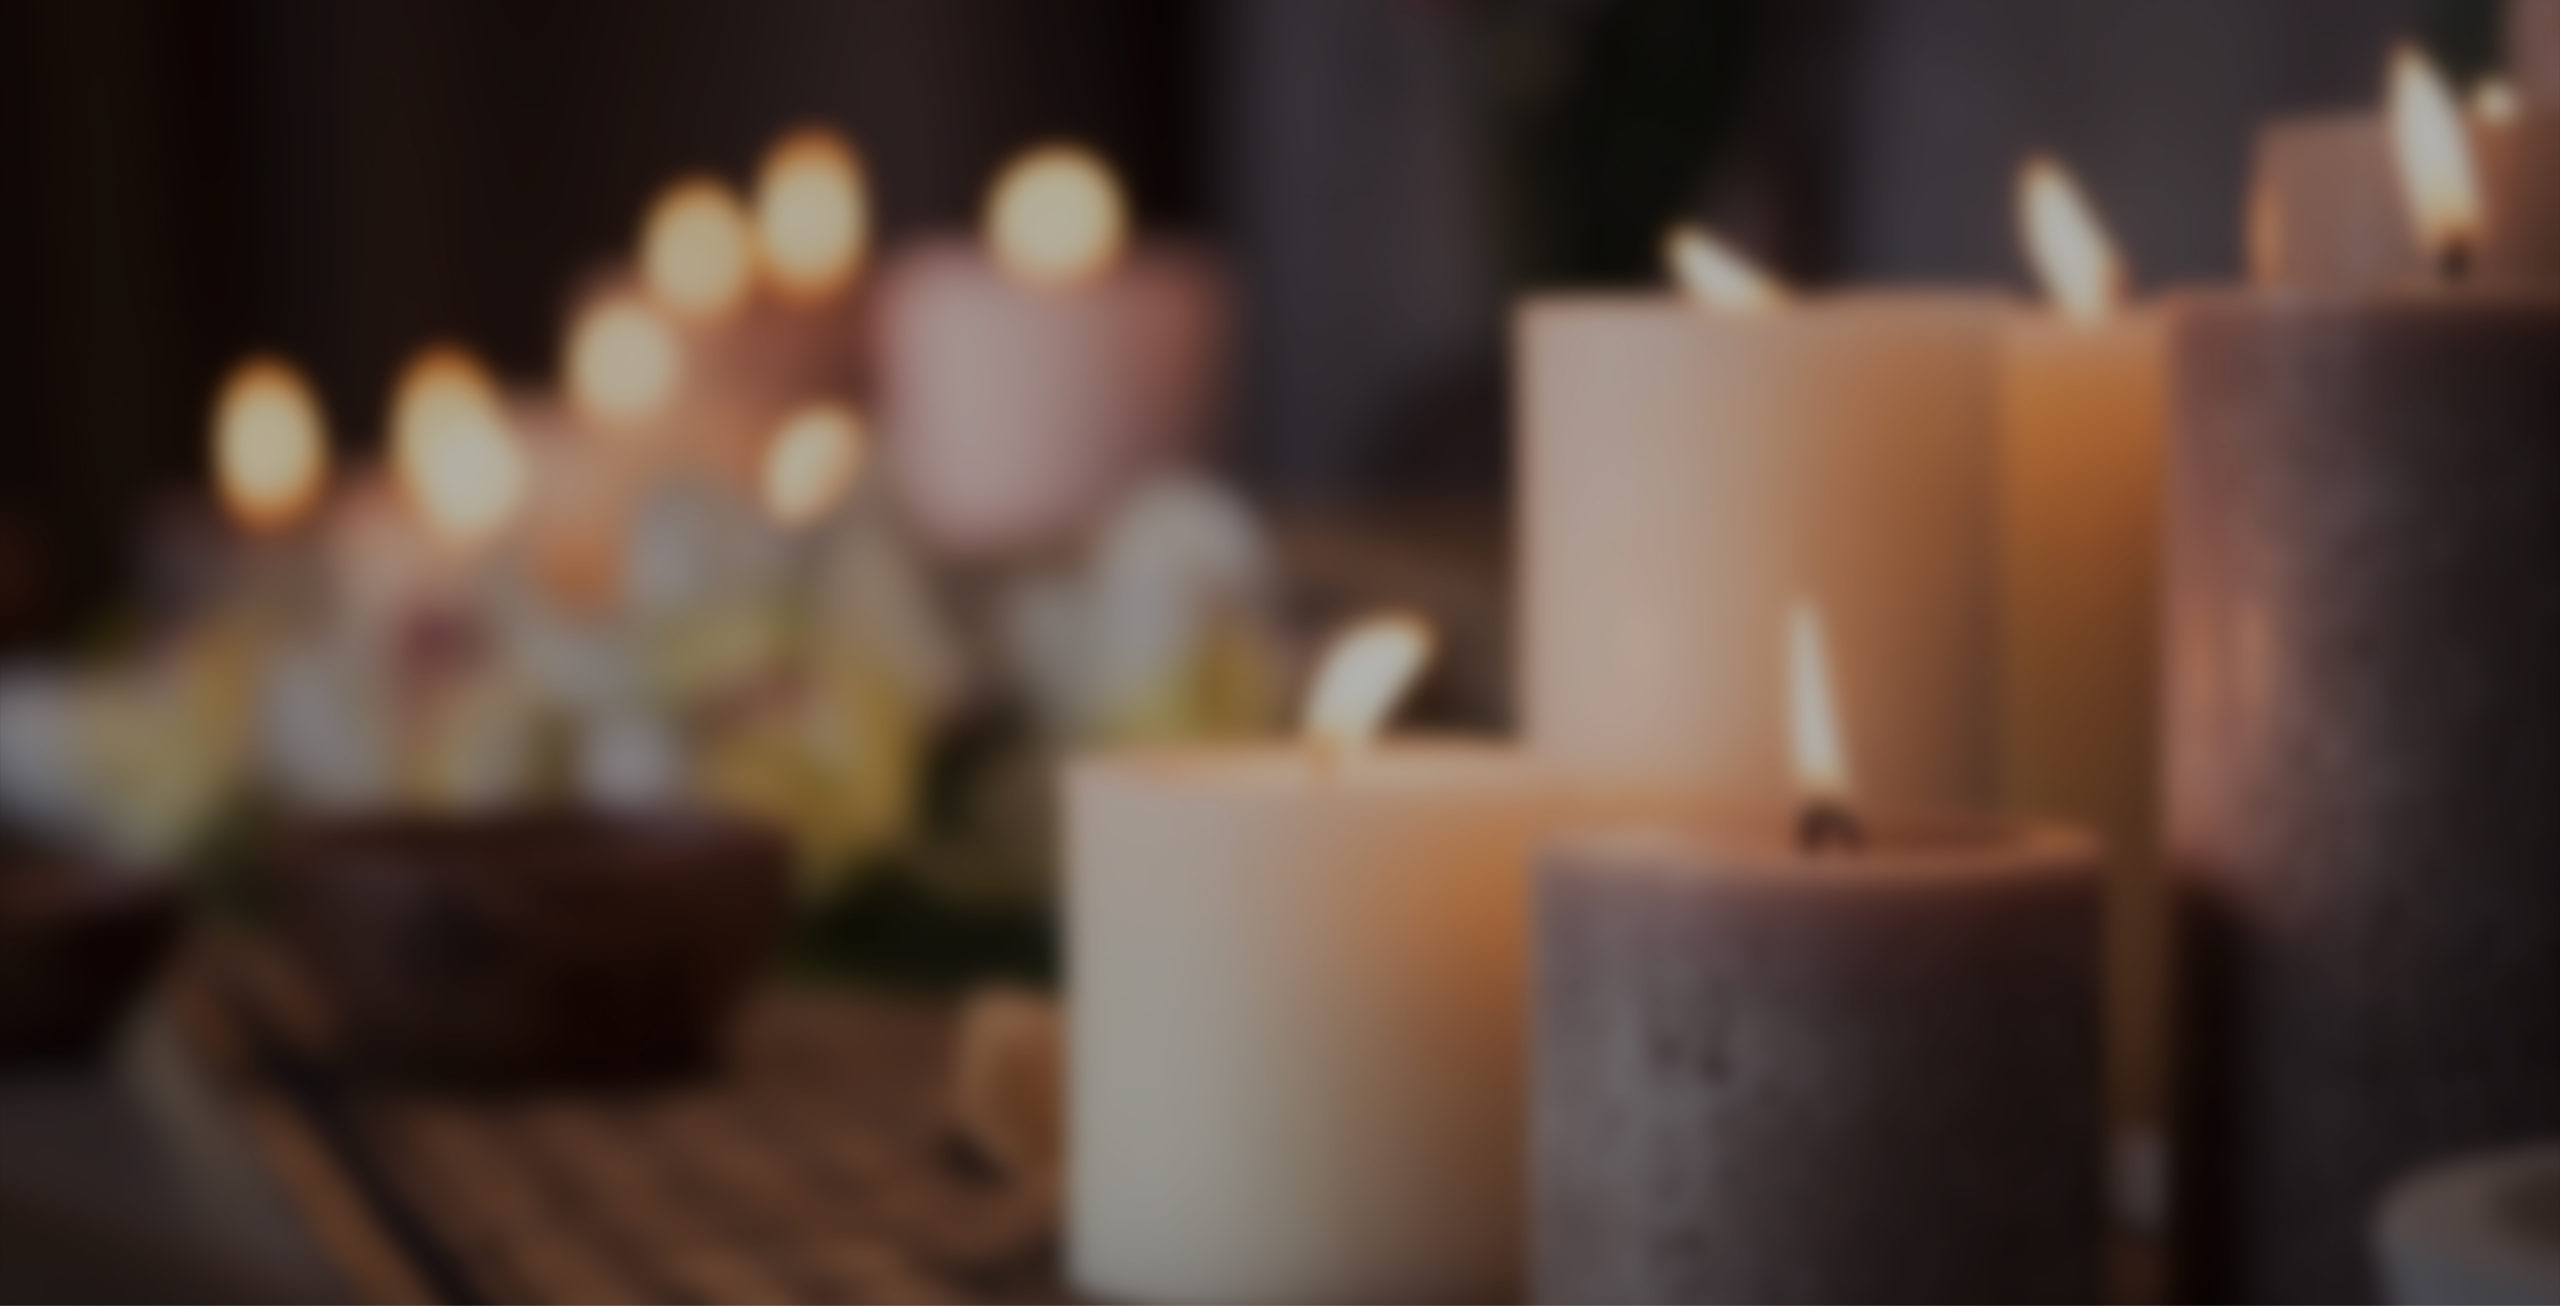 Aromatherapy Candles in a relaxed spa setting